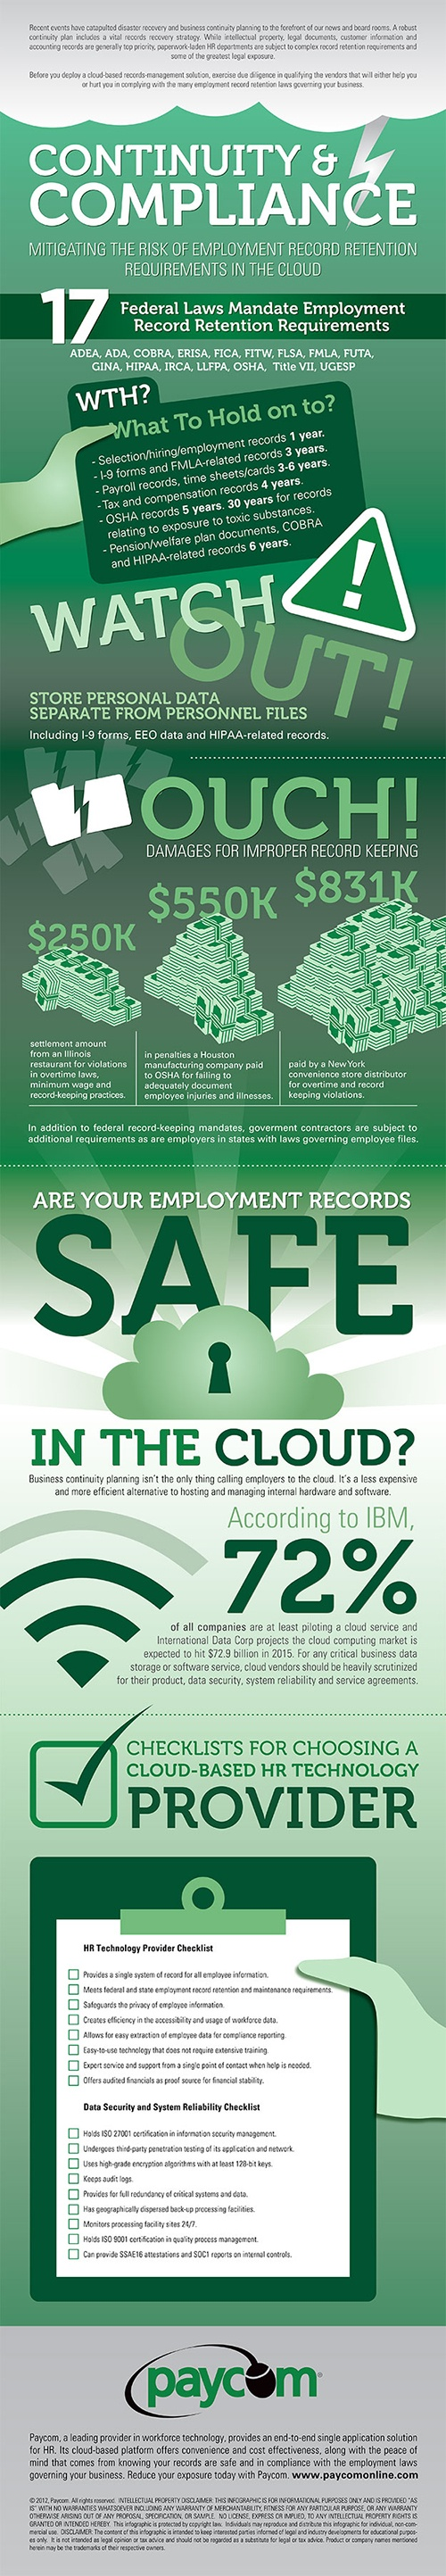 Continuity and Compliance: Mitigating the risk of employment record retention and requirements in the cloud.